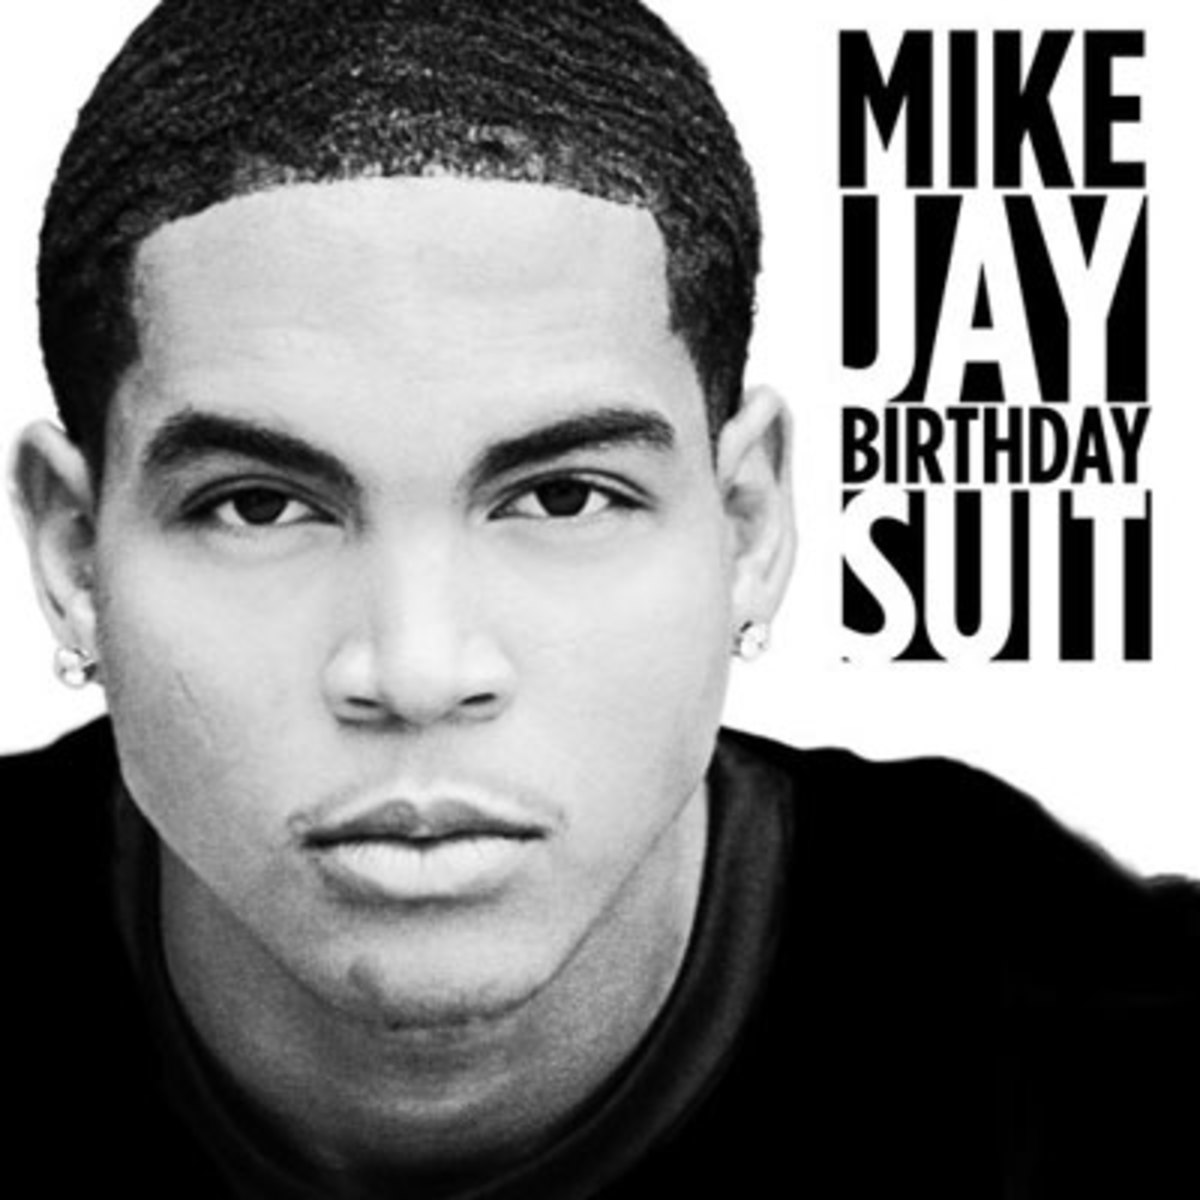 mikejay-birthdaysuit.jpg